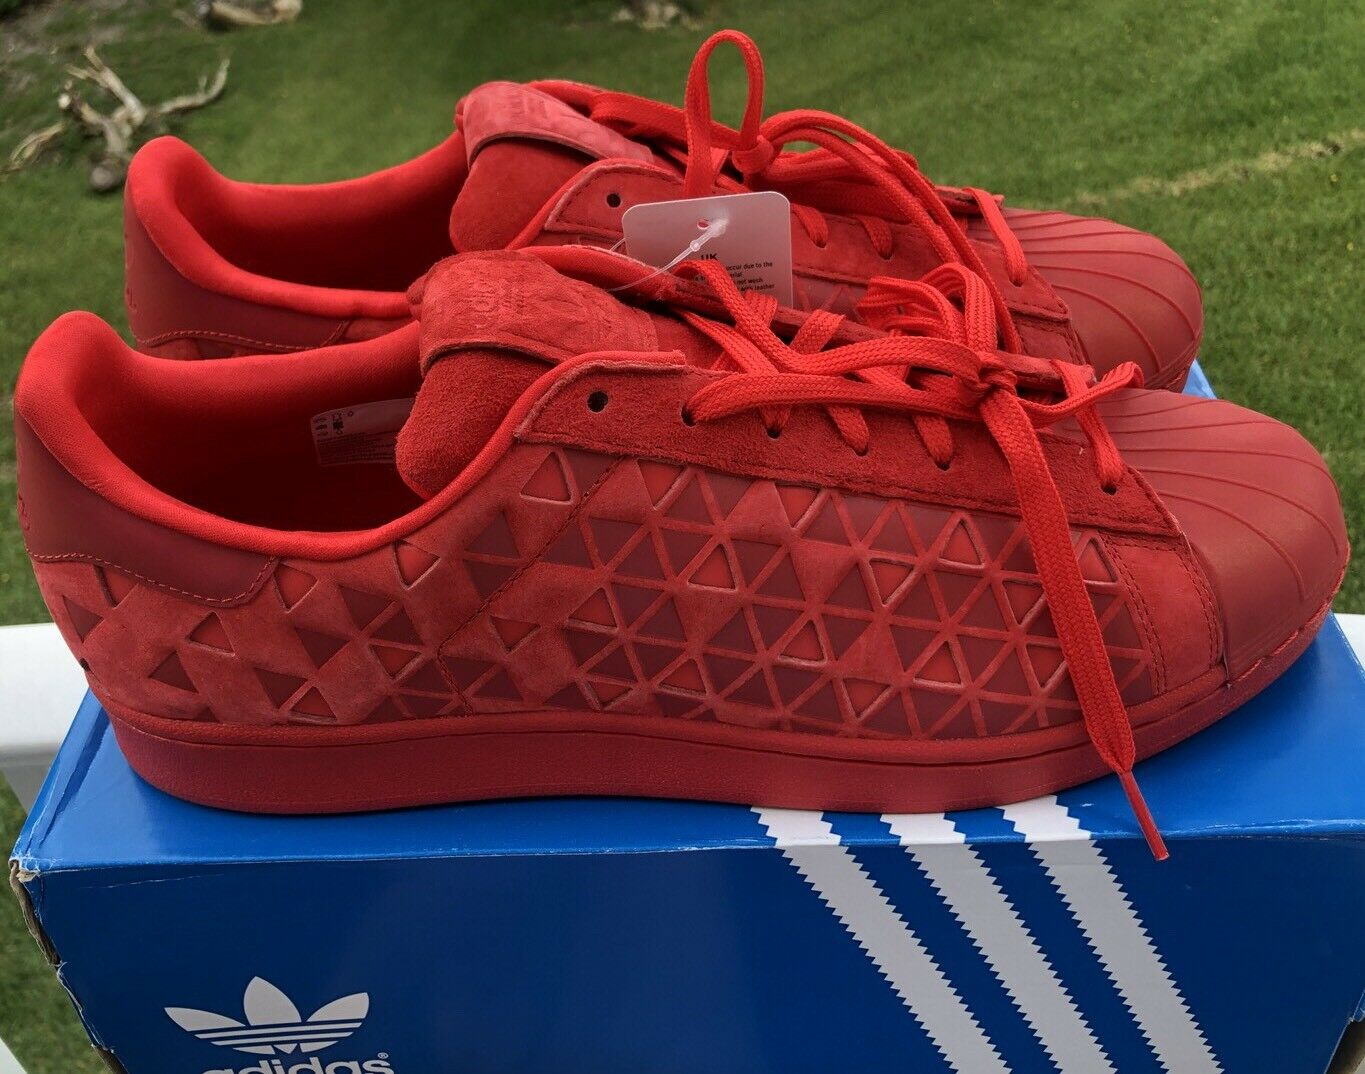 Adidas Superstar Xeno VivRED Red Size 12 AQ8181 Lifestyle Running Training